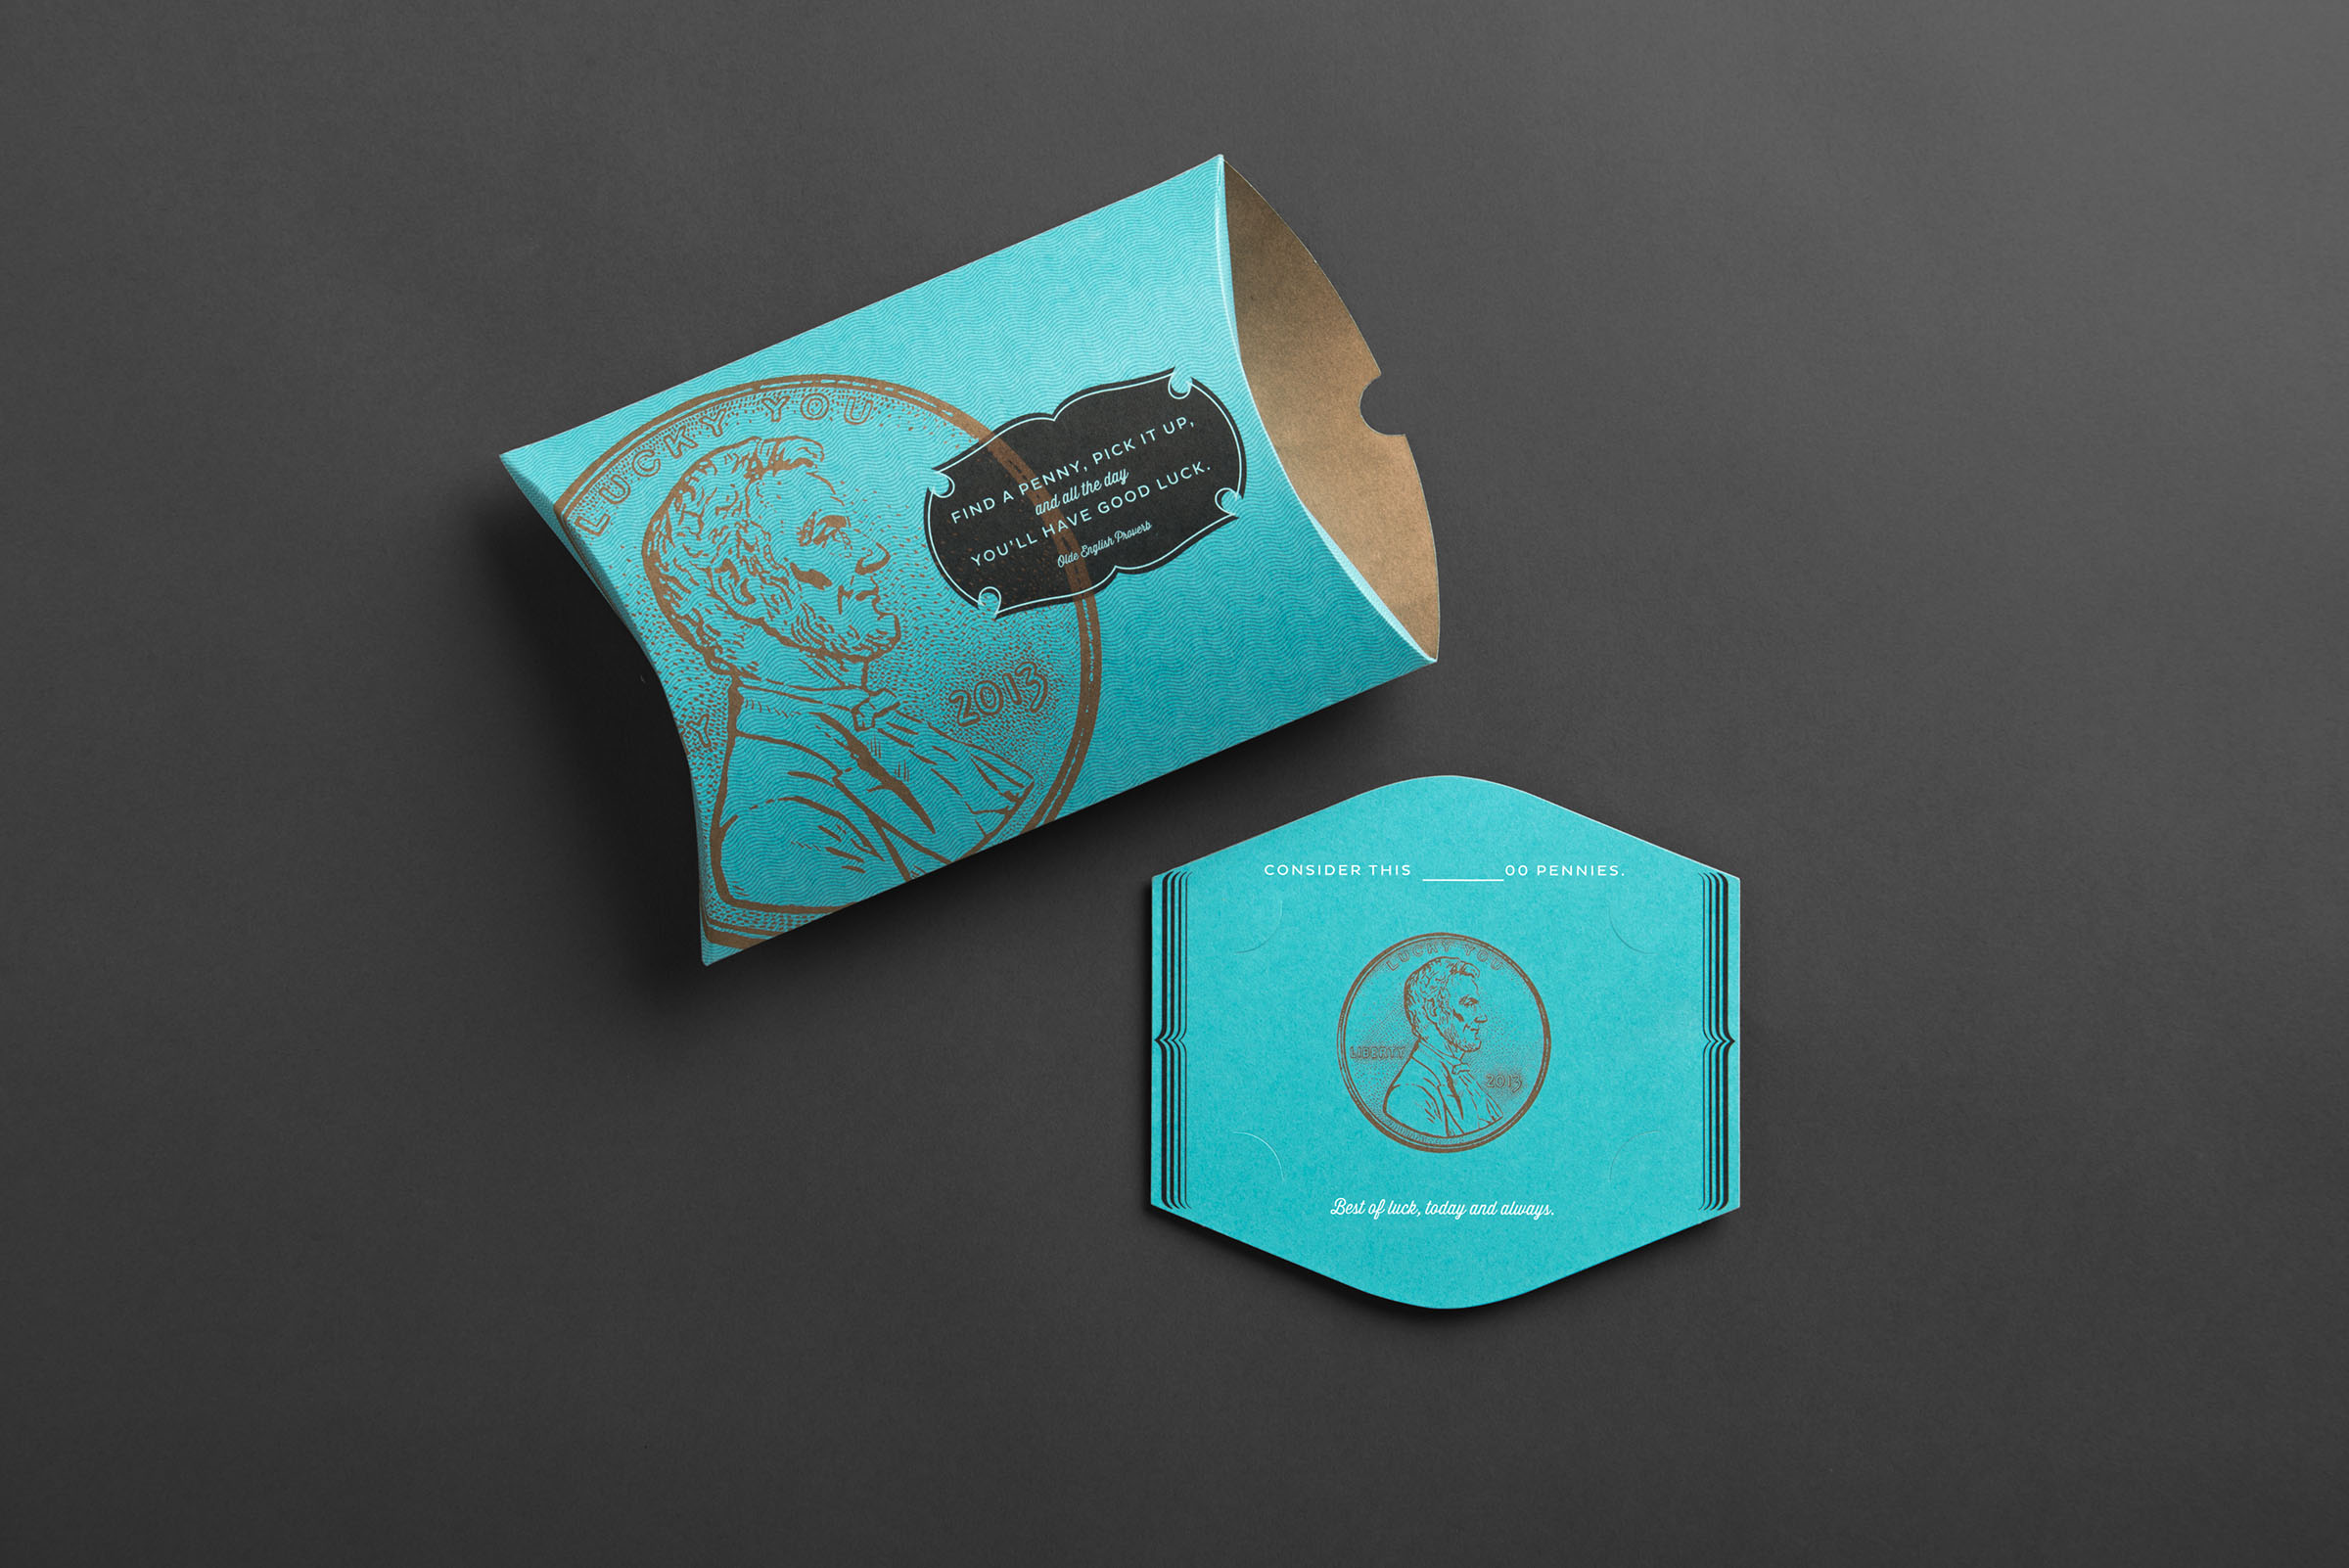 EnZed_2016Website_Packaging_08 FP Lucky 13_02